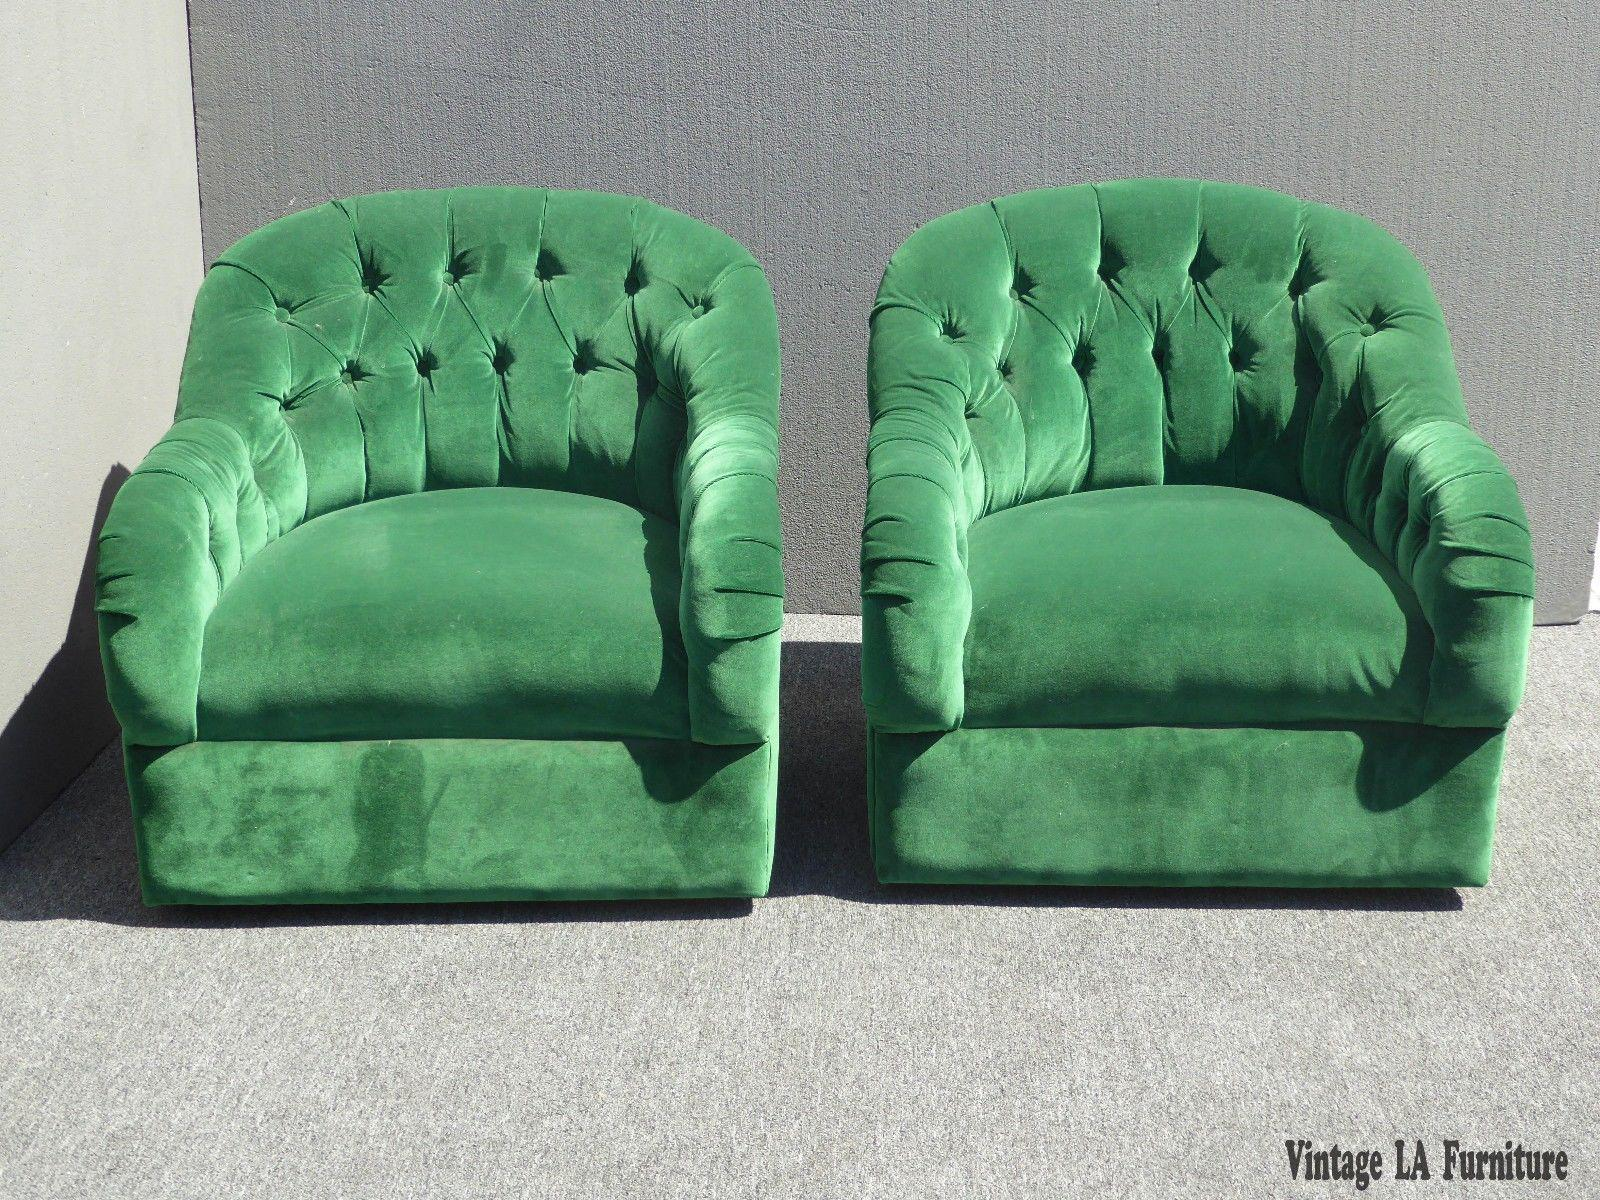 Vintage Pair Of Mid Century Modern Tufted Green Velvet Swivel Club Chairs    Image 2 Of